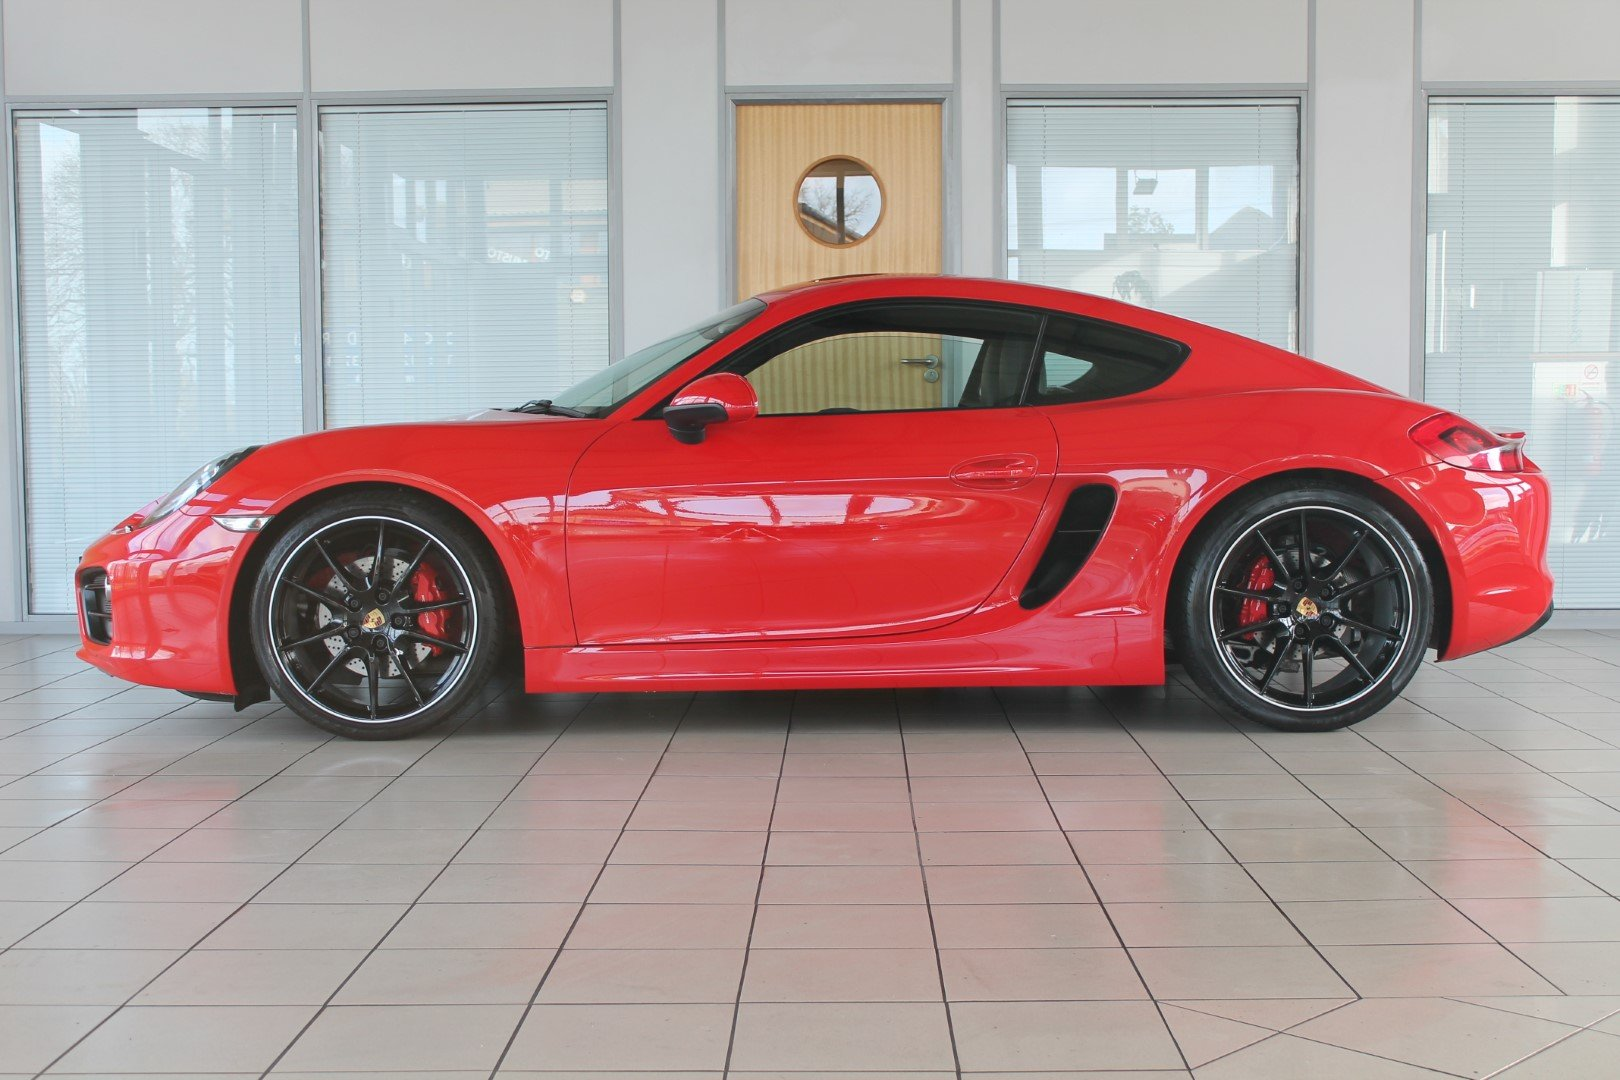 2014 Cayman (981) S Manual For Sale (picture 3 of 6)